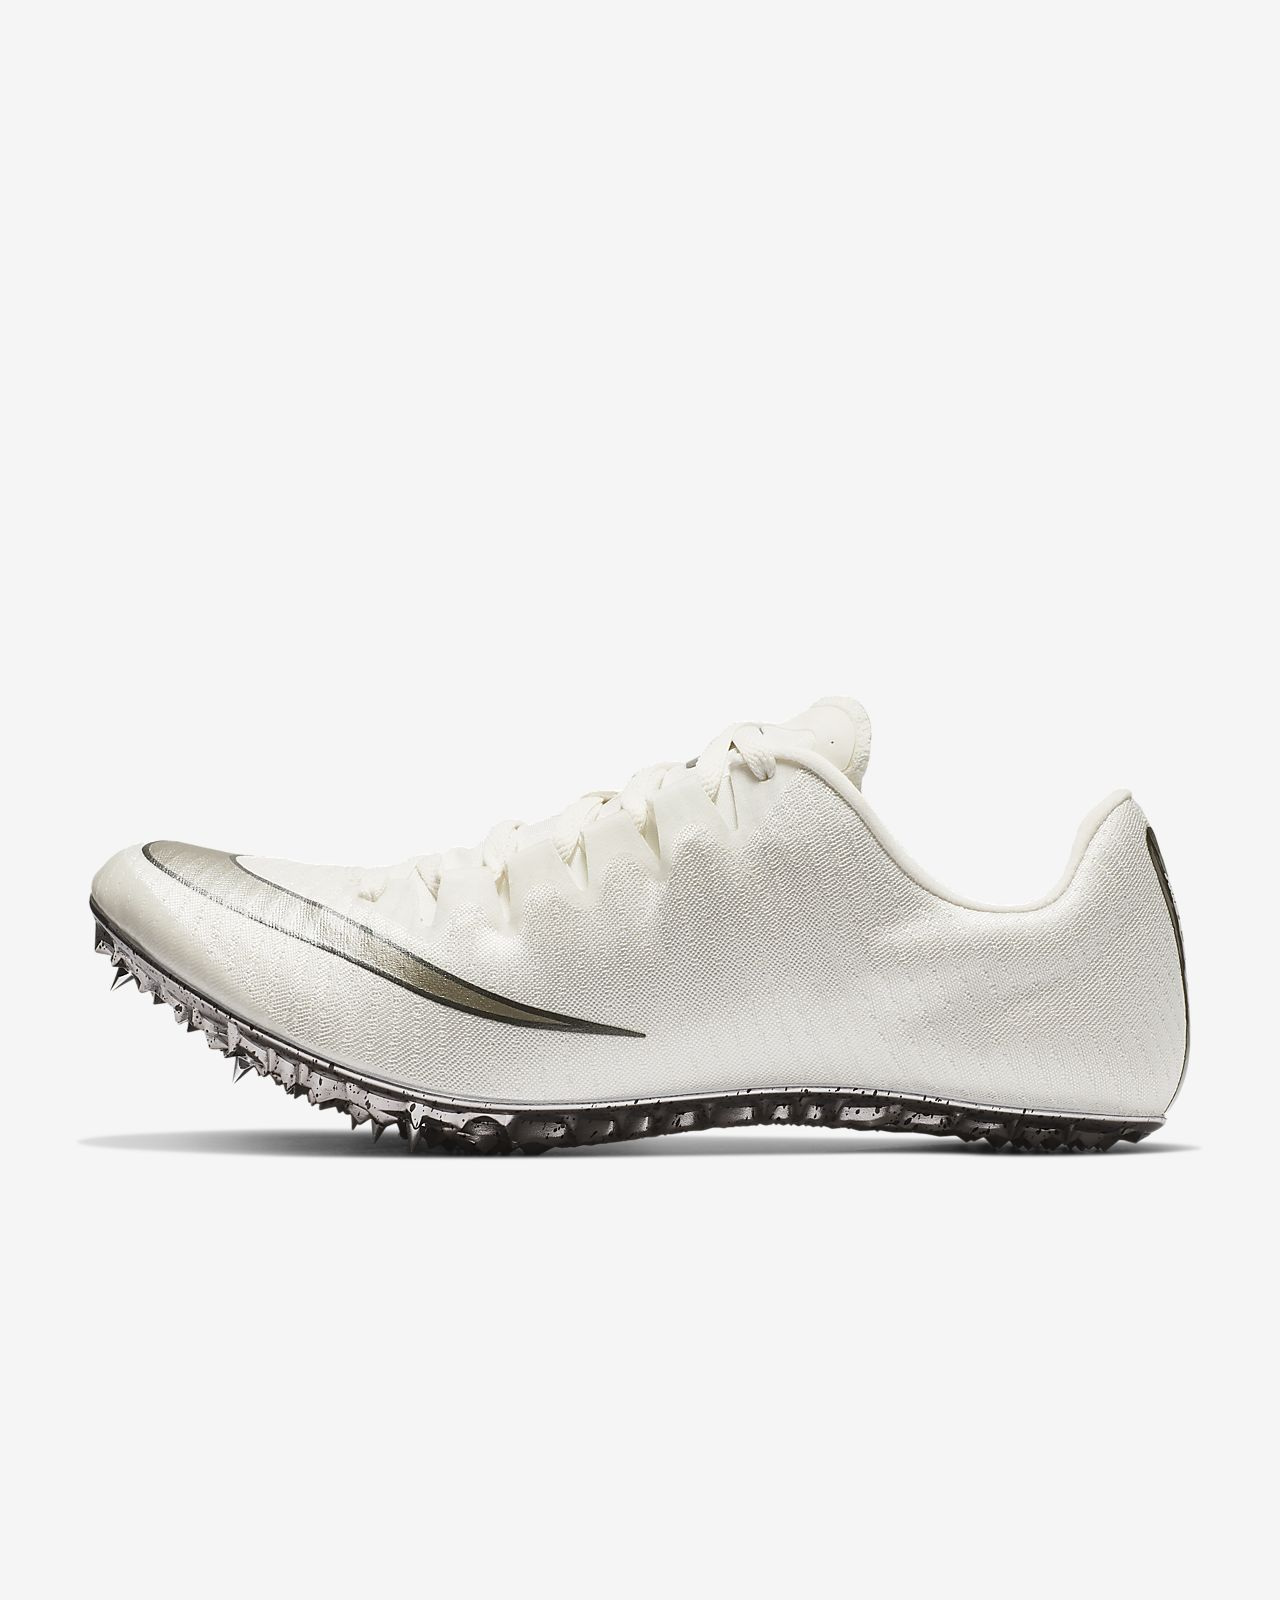 dba8eab8b8870 Nike Superfly Elite Racing Spike. Nike.com AU